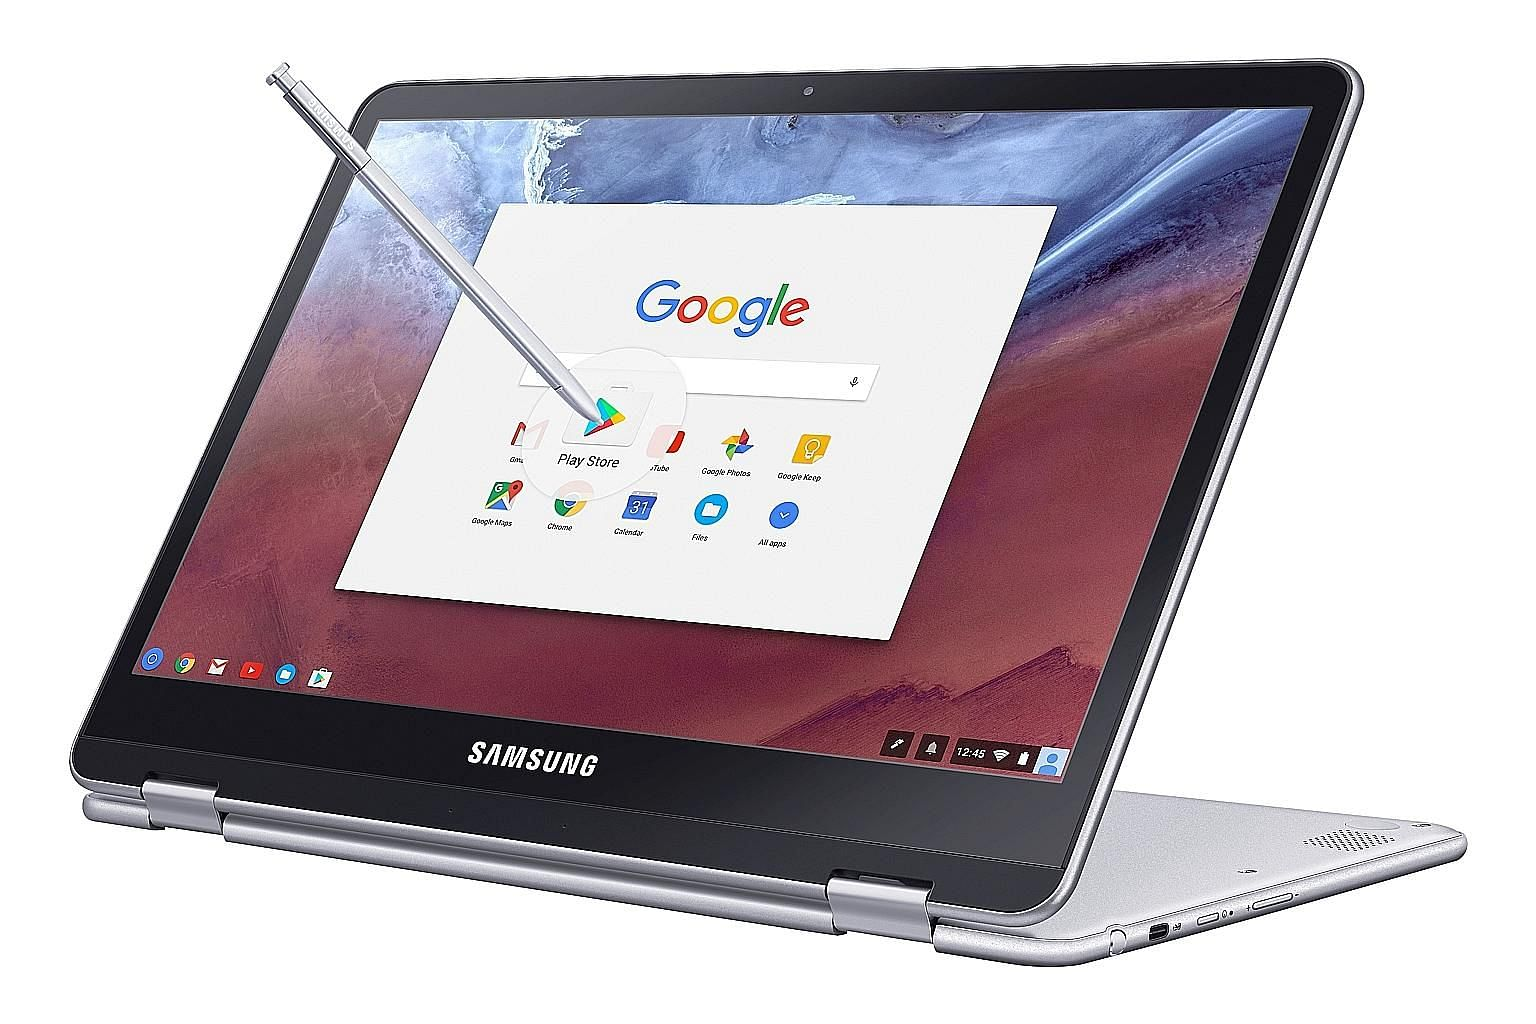 A stylus menu pops up when you eject the stylus from the side of the Samsung Chromebook Plus.